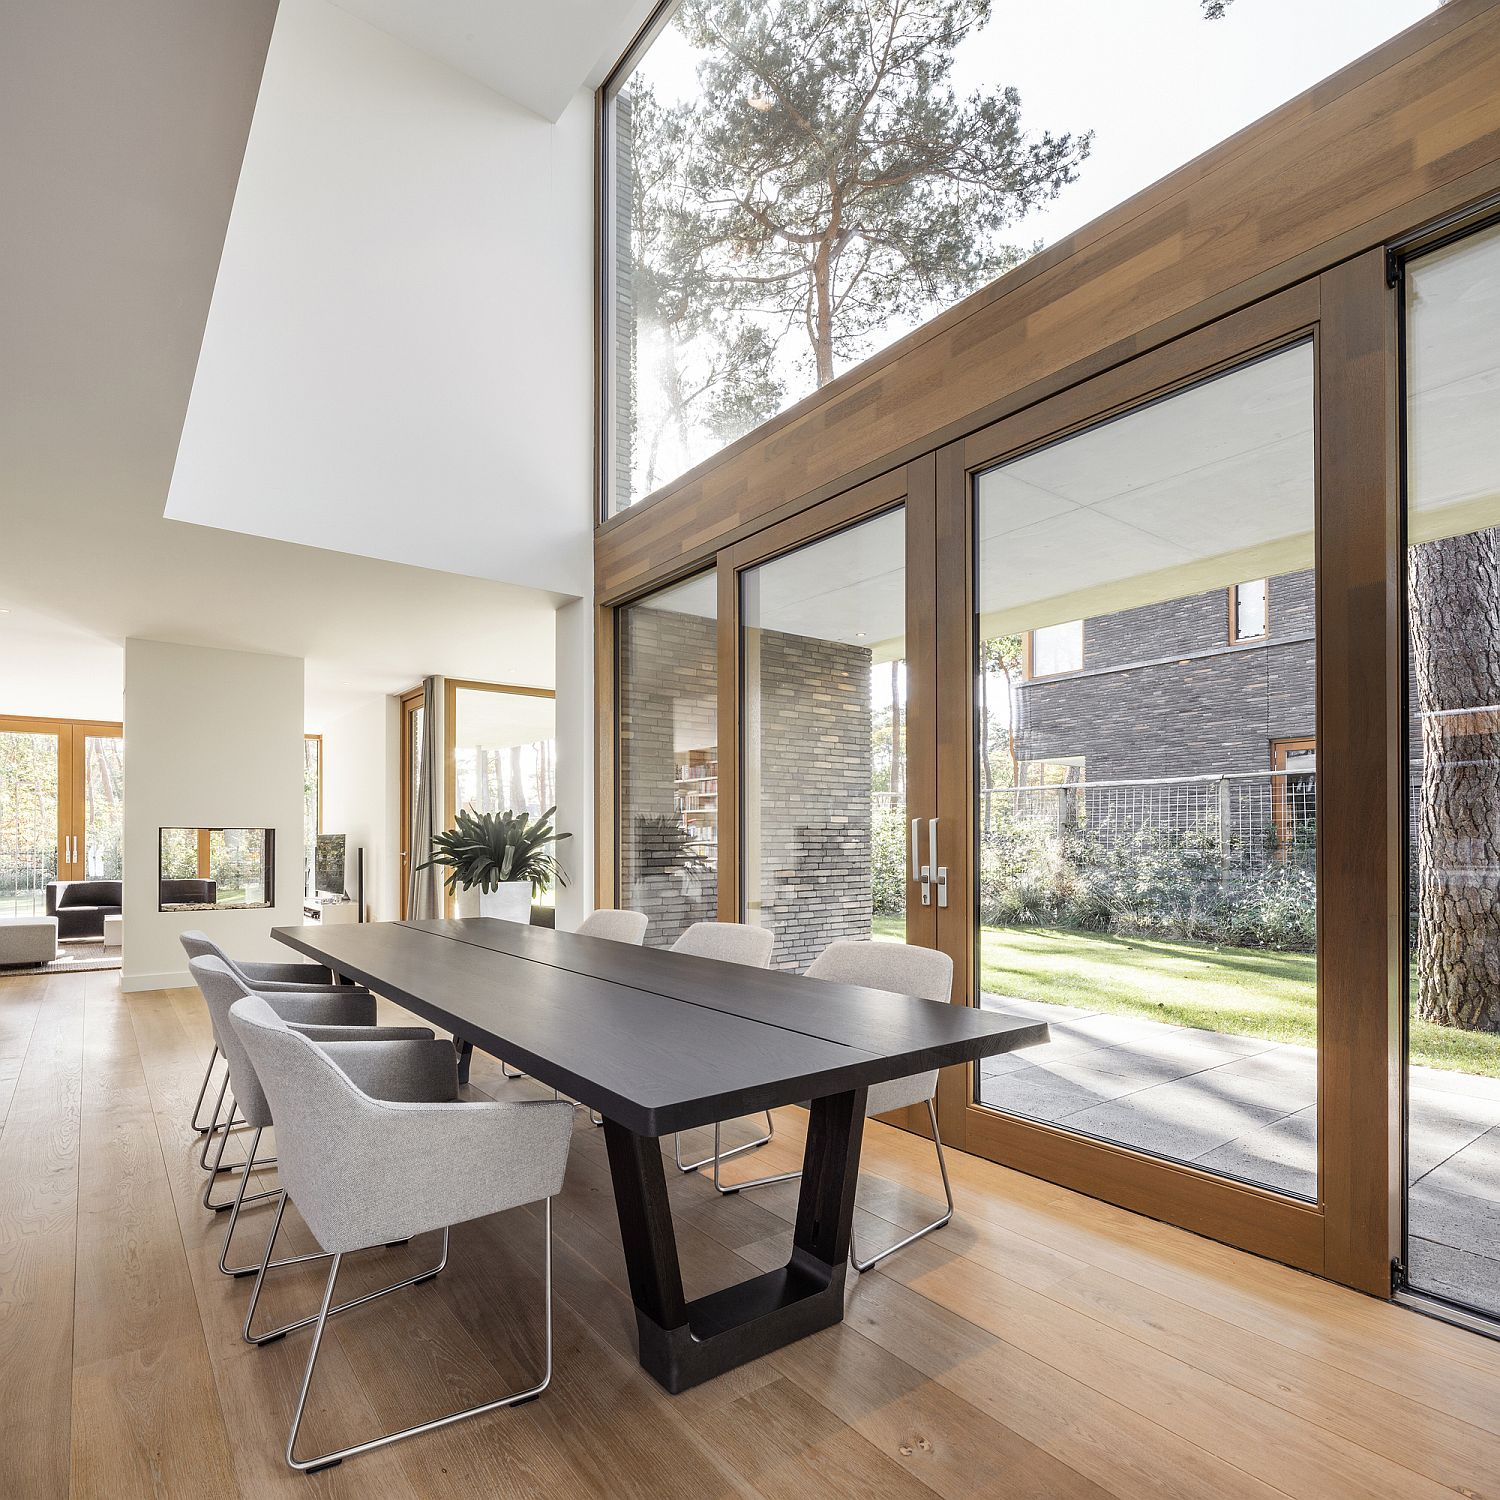 Conneting the kitchen and dining area with the garden outside using glass walls